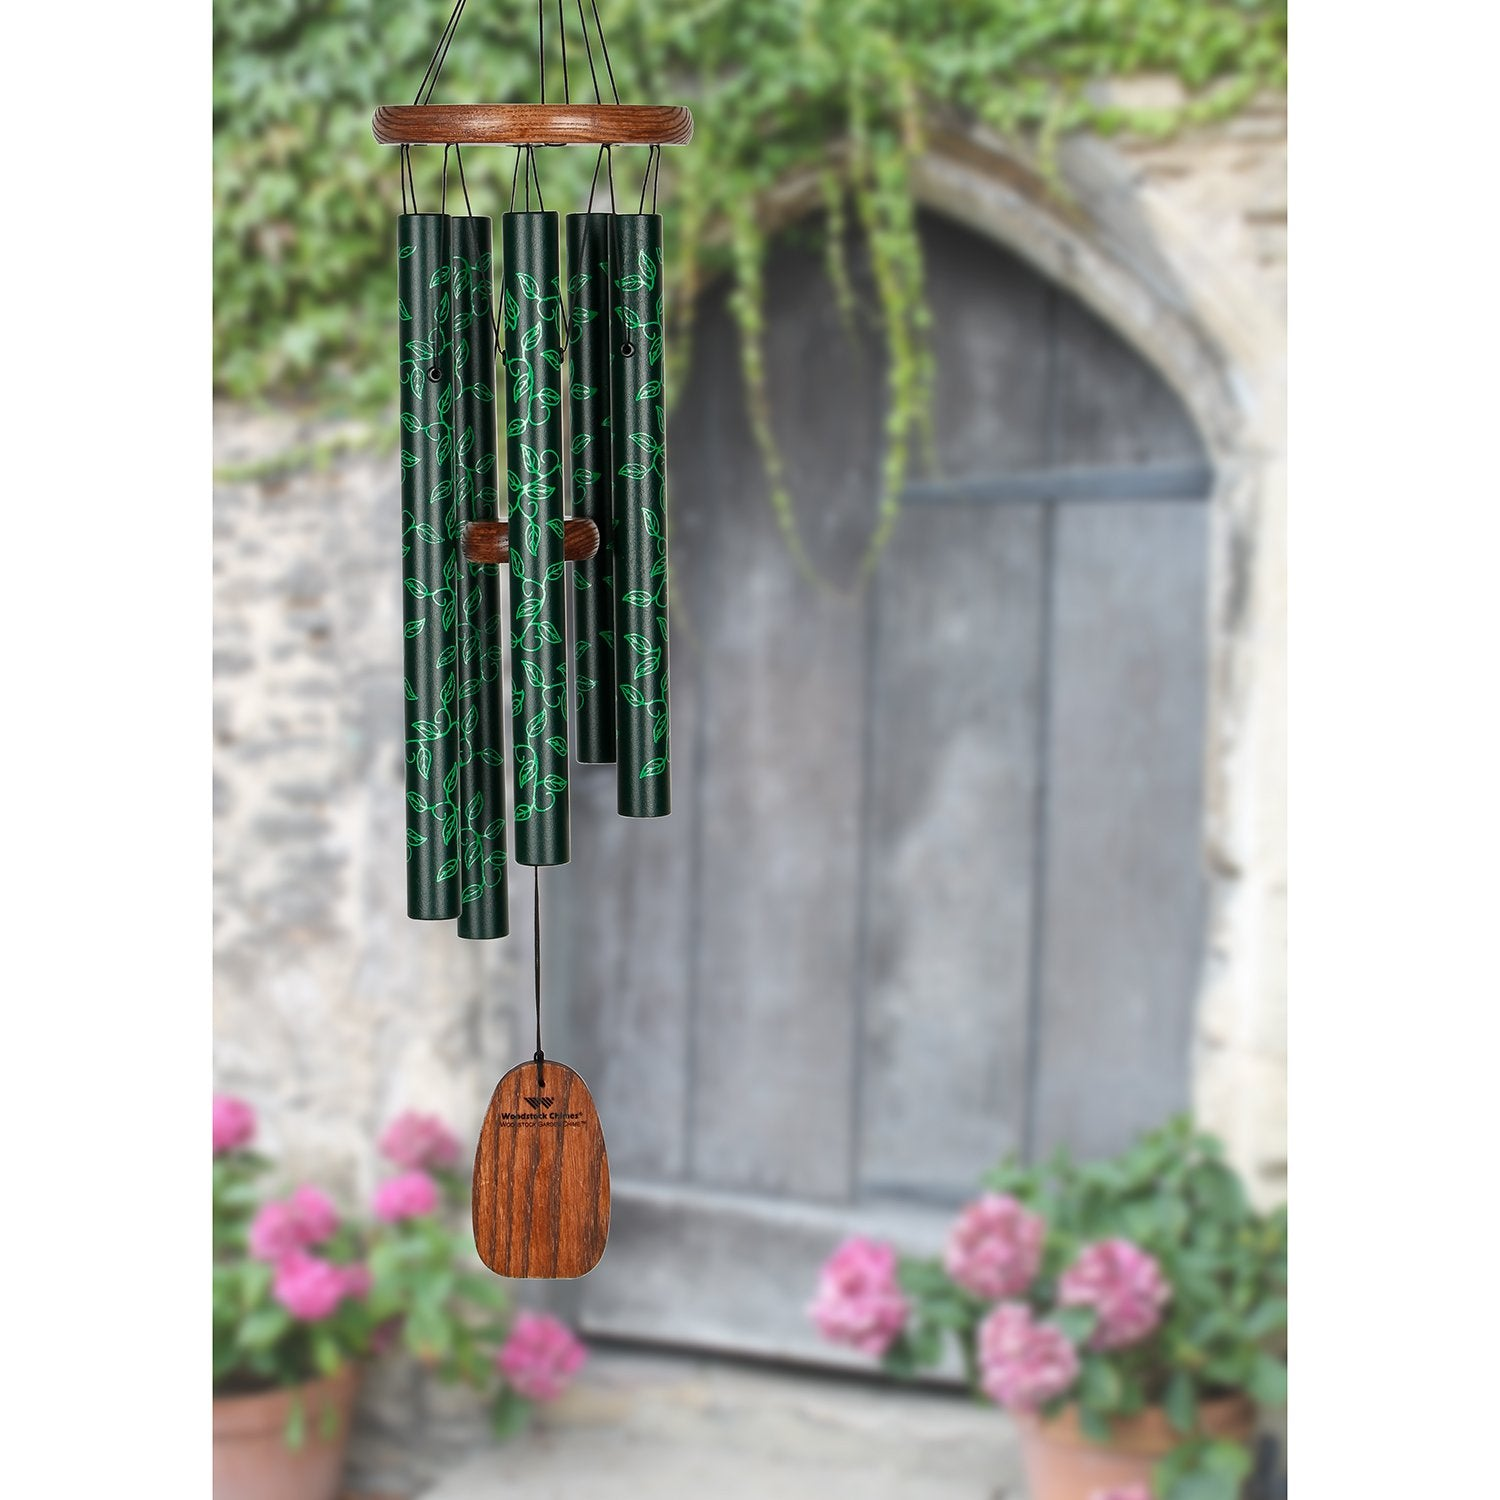 Garden Chime - Ivy lifestyle image